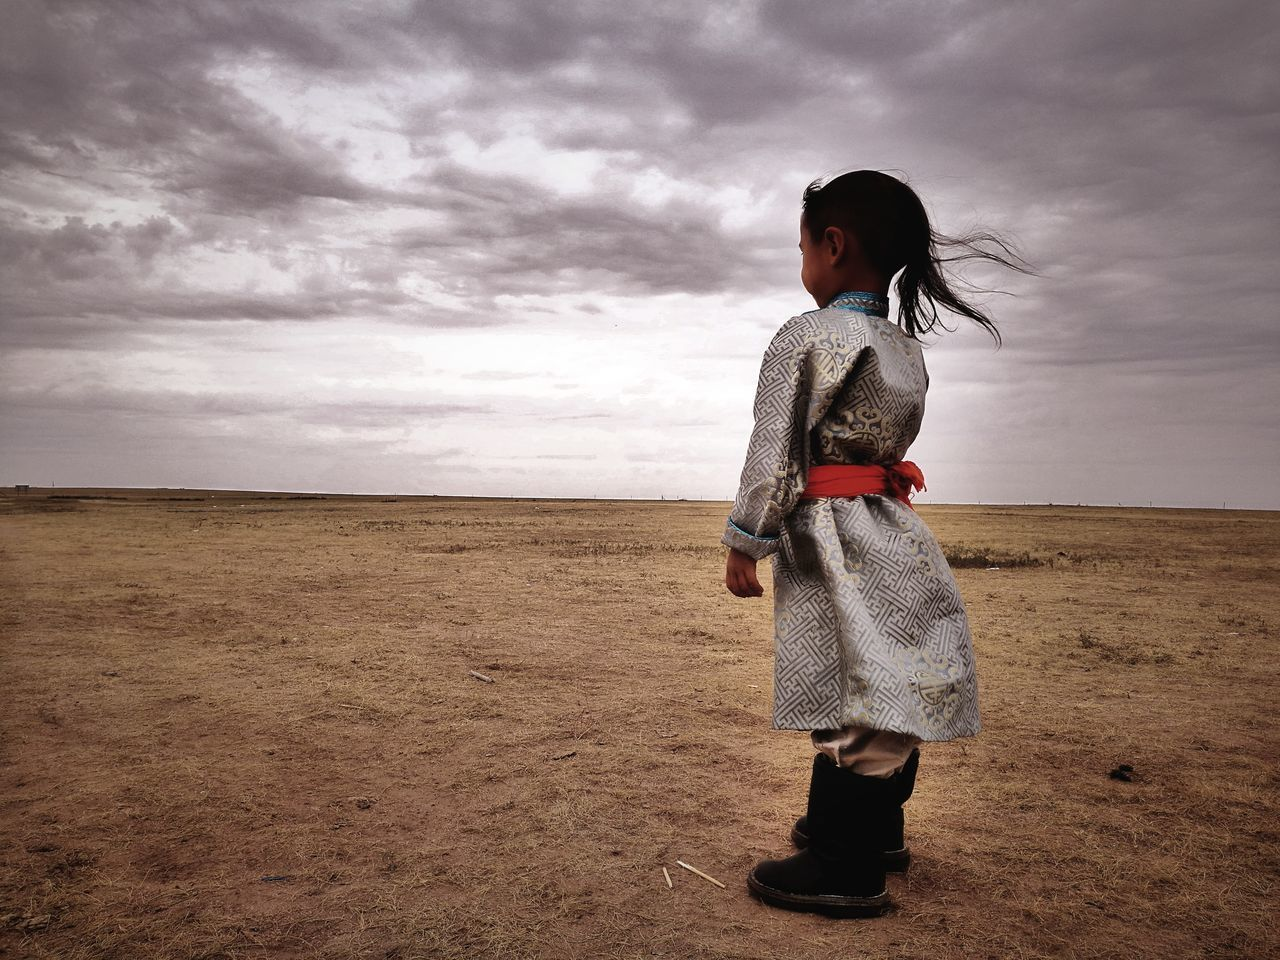 cloud - sky, sky, full length, one person, childhood, real people, standing, sand, outdoors, landscape, sea, field, nature, beach, horizon over land, day, lifestyles, girls, scenics, desert, beauty in nature, storm cloud, people